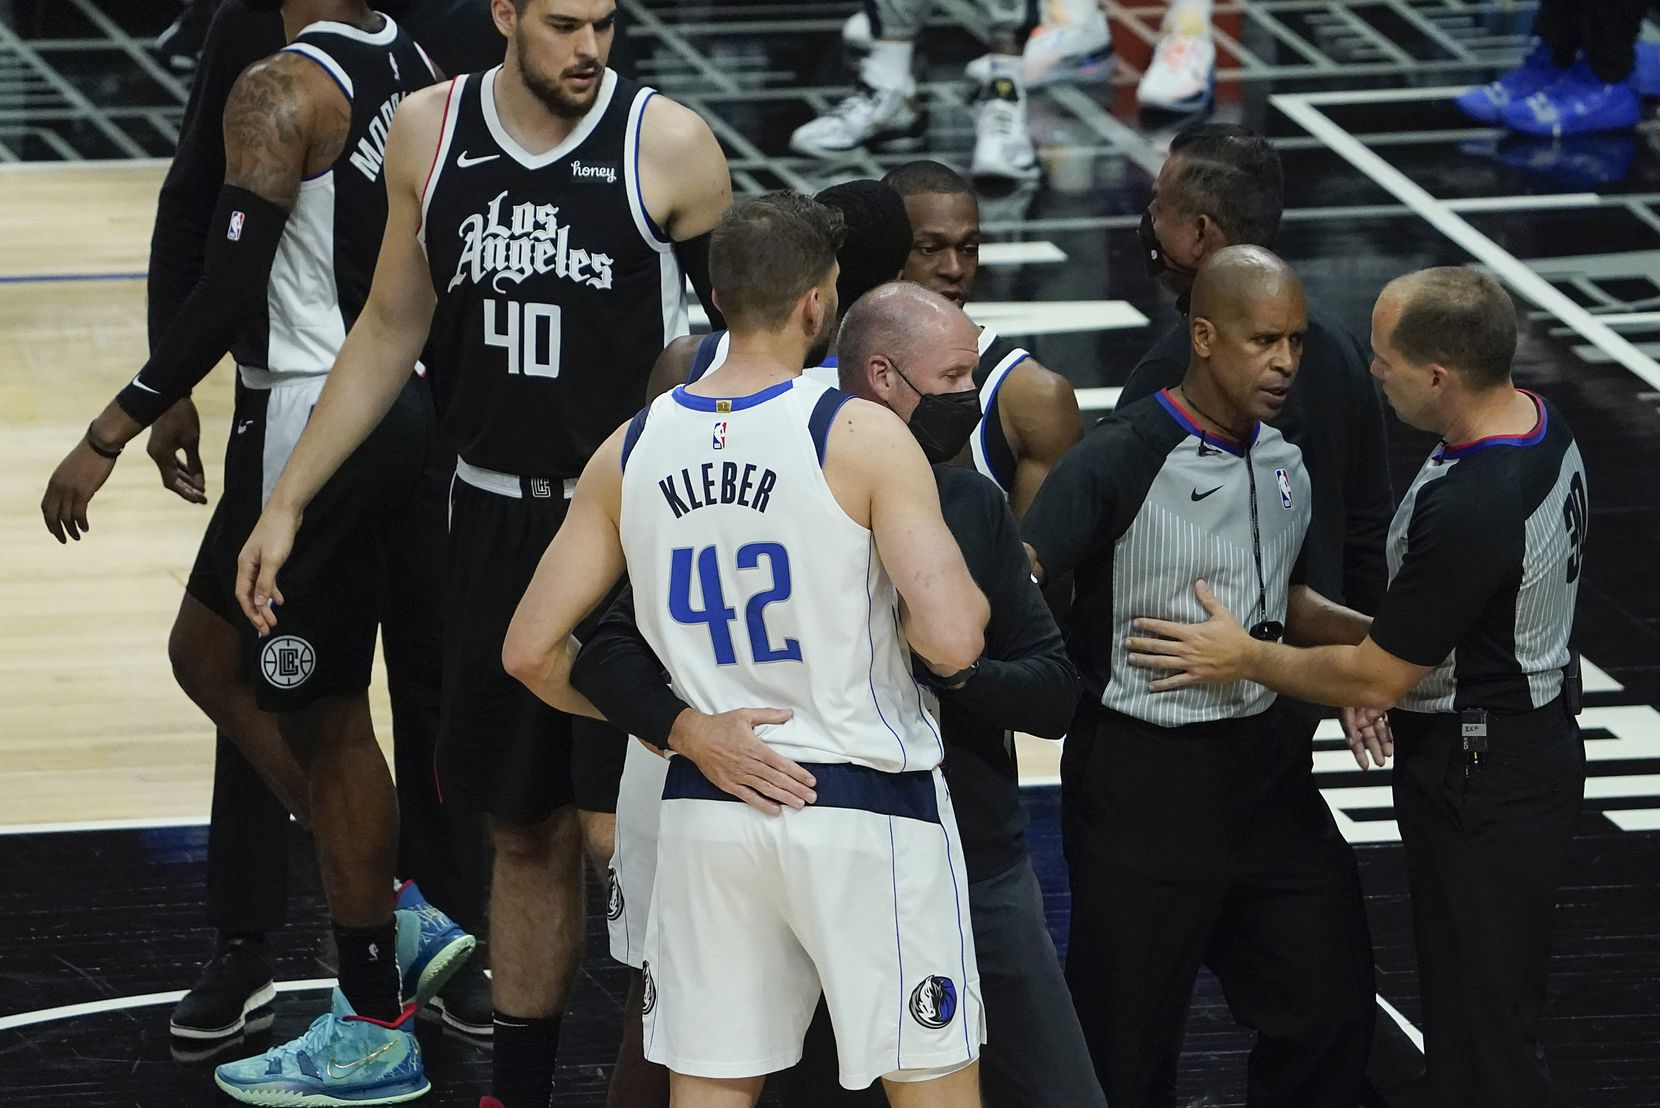 Officials separate Dallas Mavericks forward Maxi Kleber from LA Clippers forward Marcus Morris Sr. during the first quarter of an NBA playoff basketball game at the Staples Center on Wednesday, June 2, 2021, in Los Angeles.  (Smiley N. Pool/The Dallas Morning News)